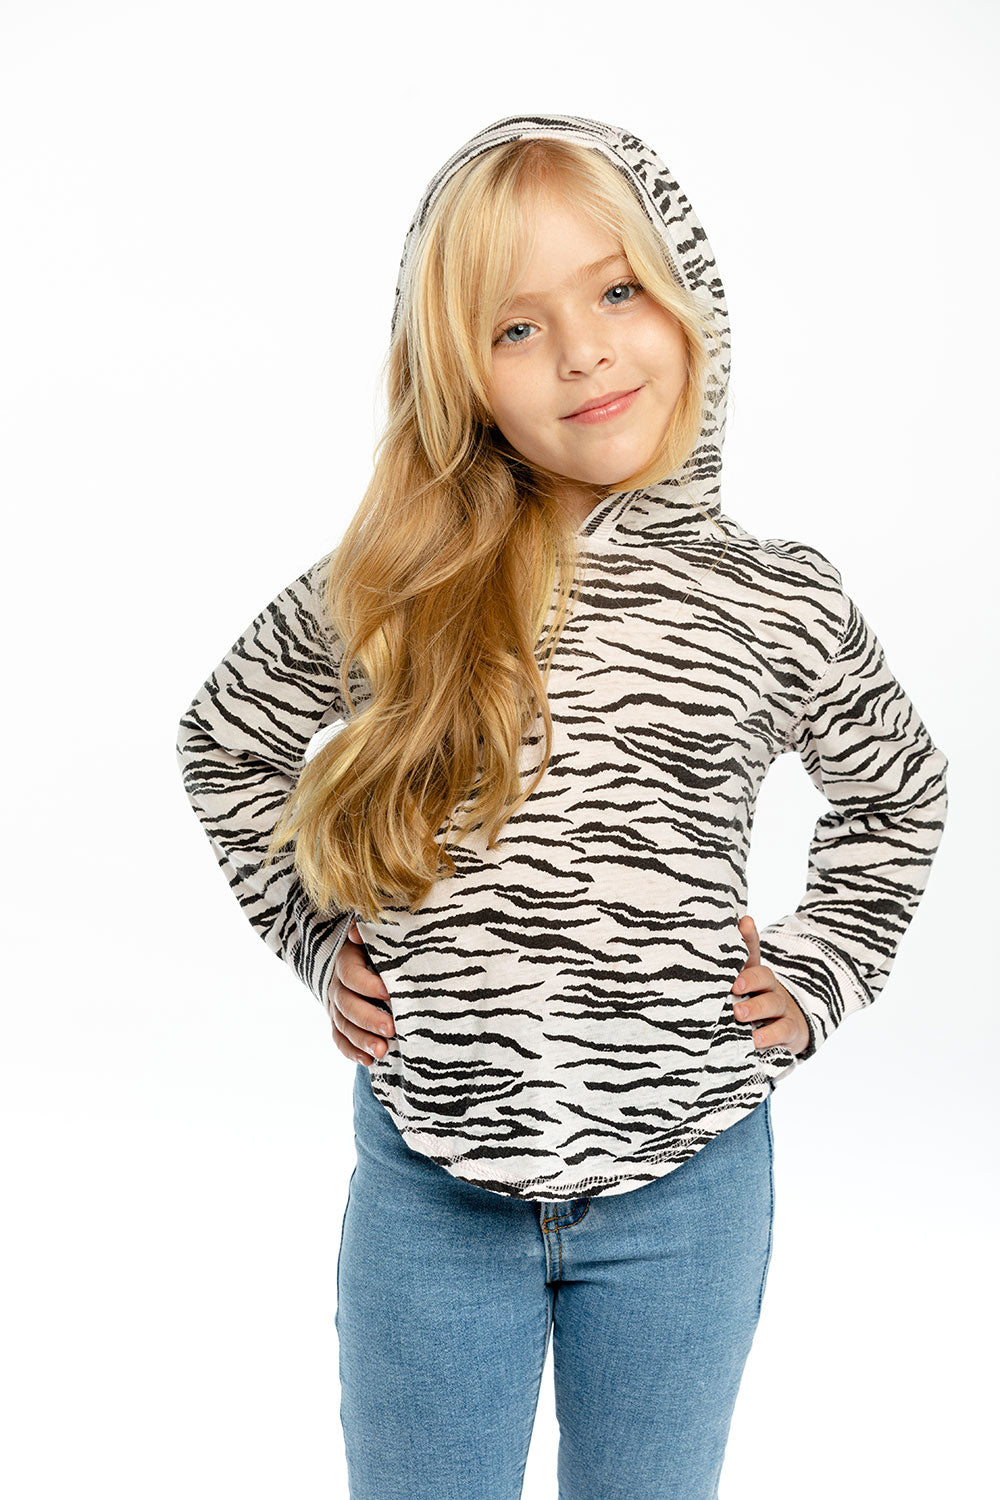 Girls Recycled Vintage Jersey Long Sleeve Shirttail Pullover Recycled chaserbrand4.myshopify.com